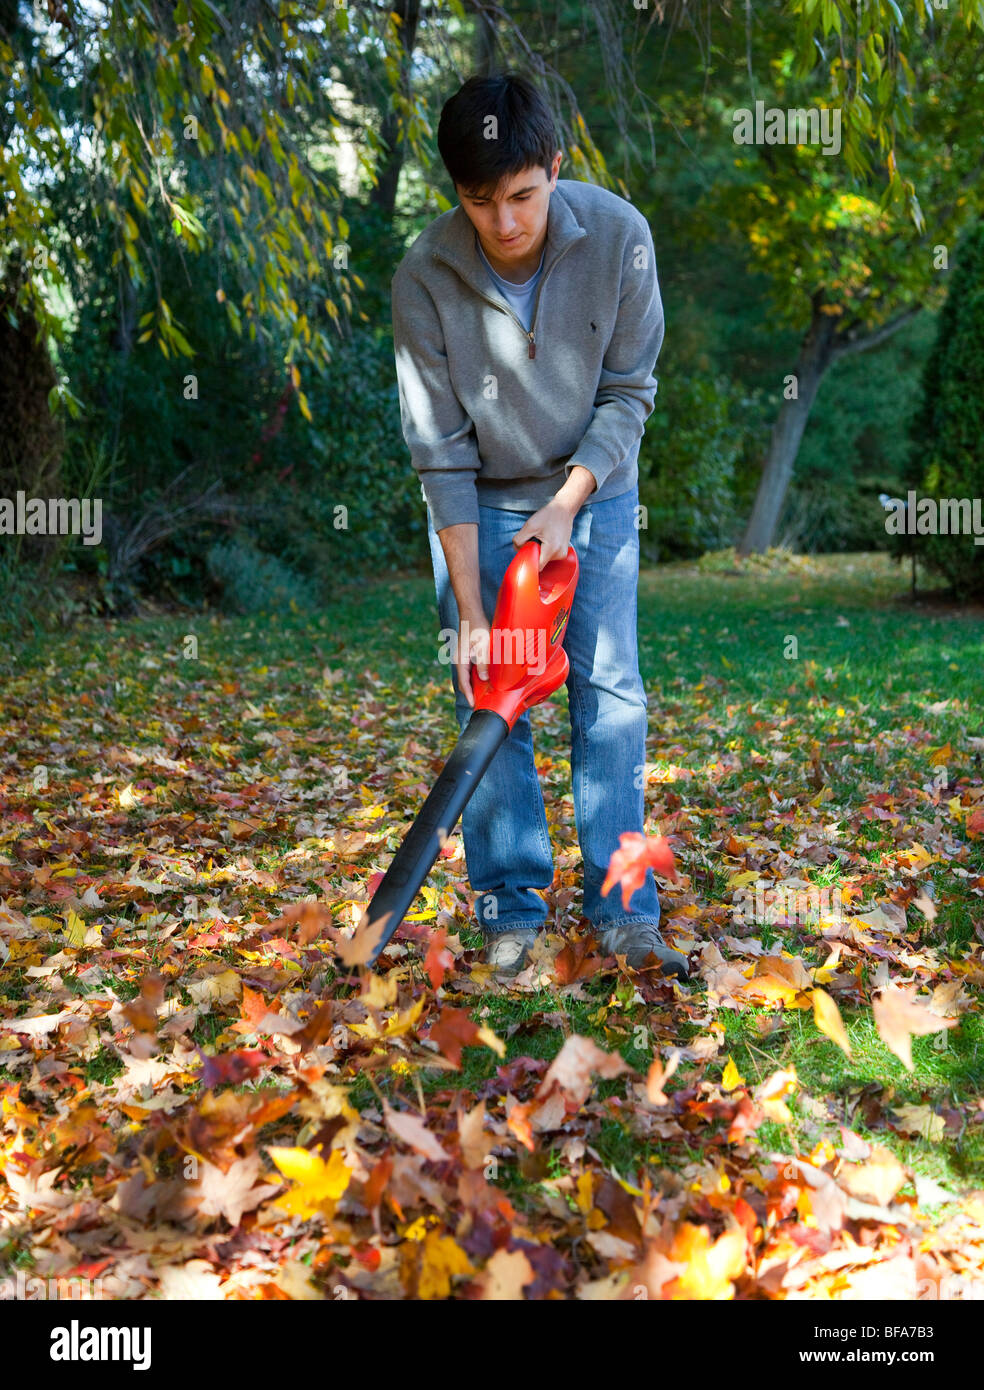 Yard Cleanup Stock Photos Amp Yard Cleanup Stock Images Alamy